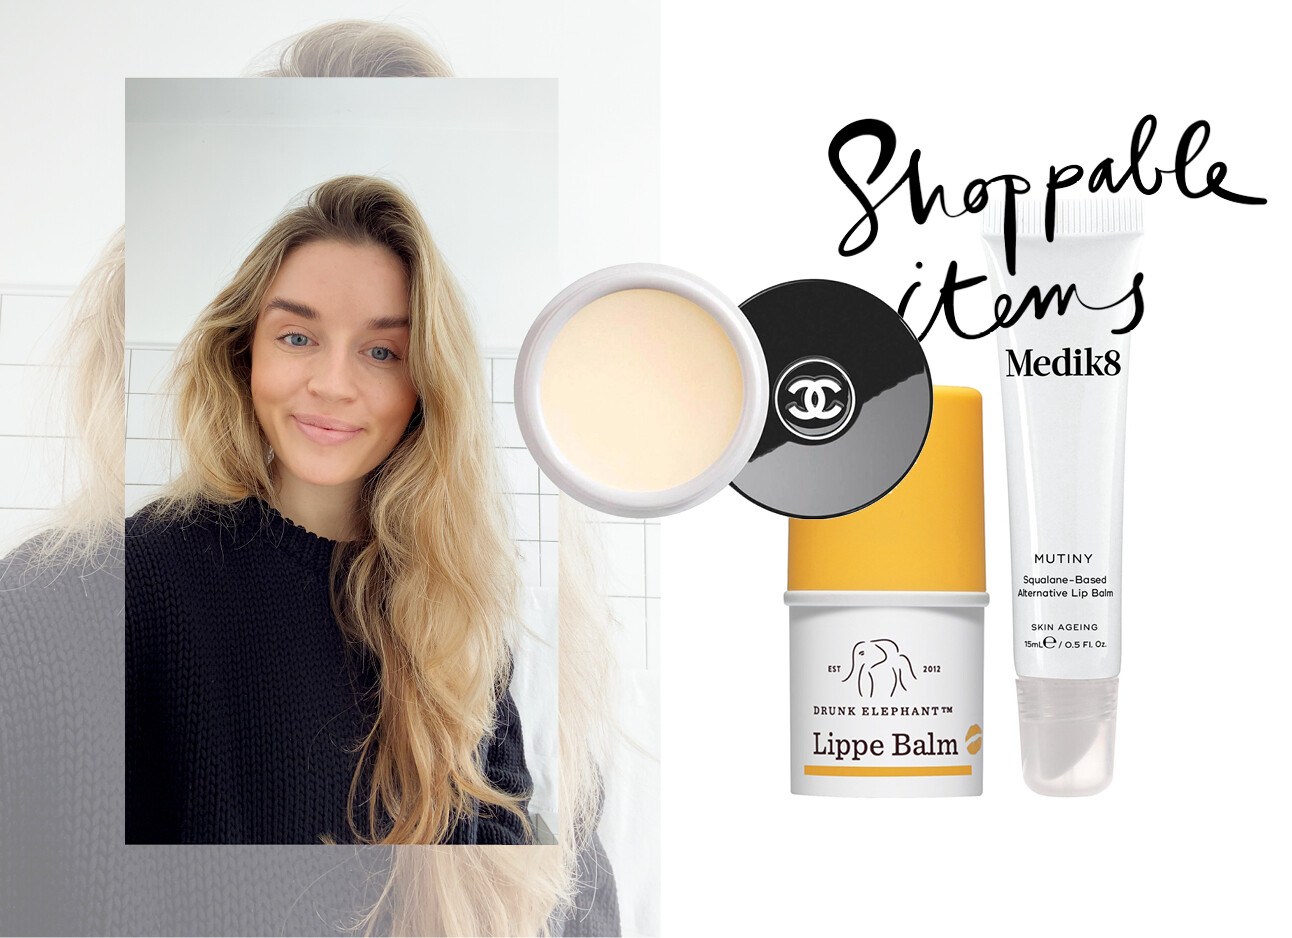 lotte van scherpenzeel lachend met lip balm shopping items